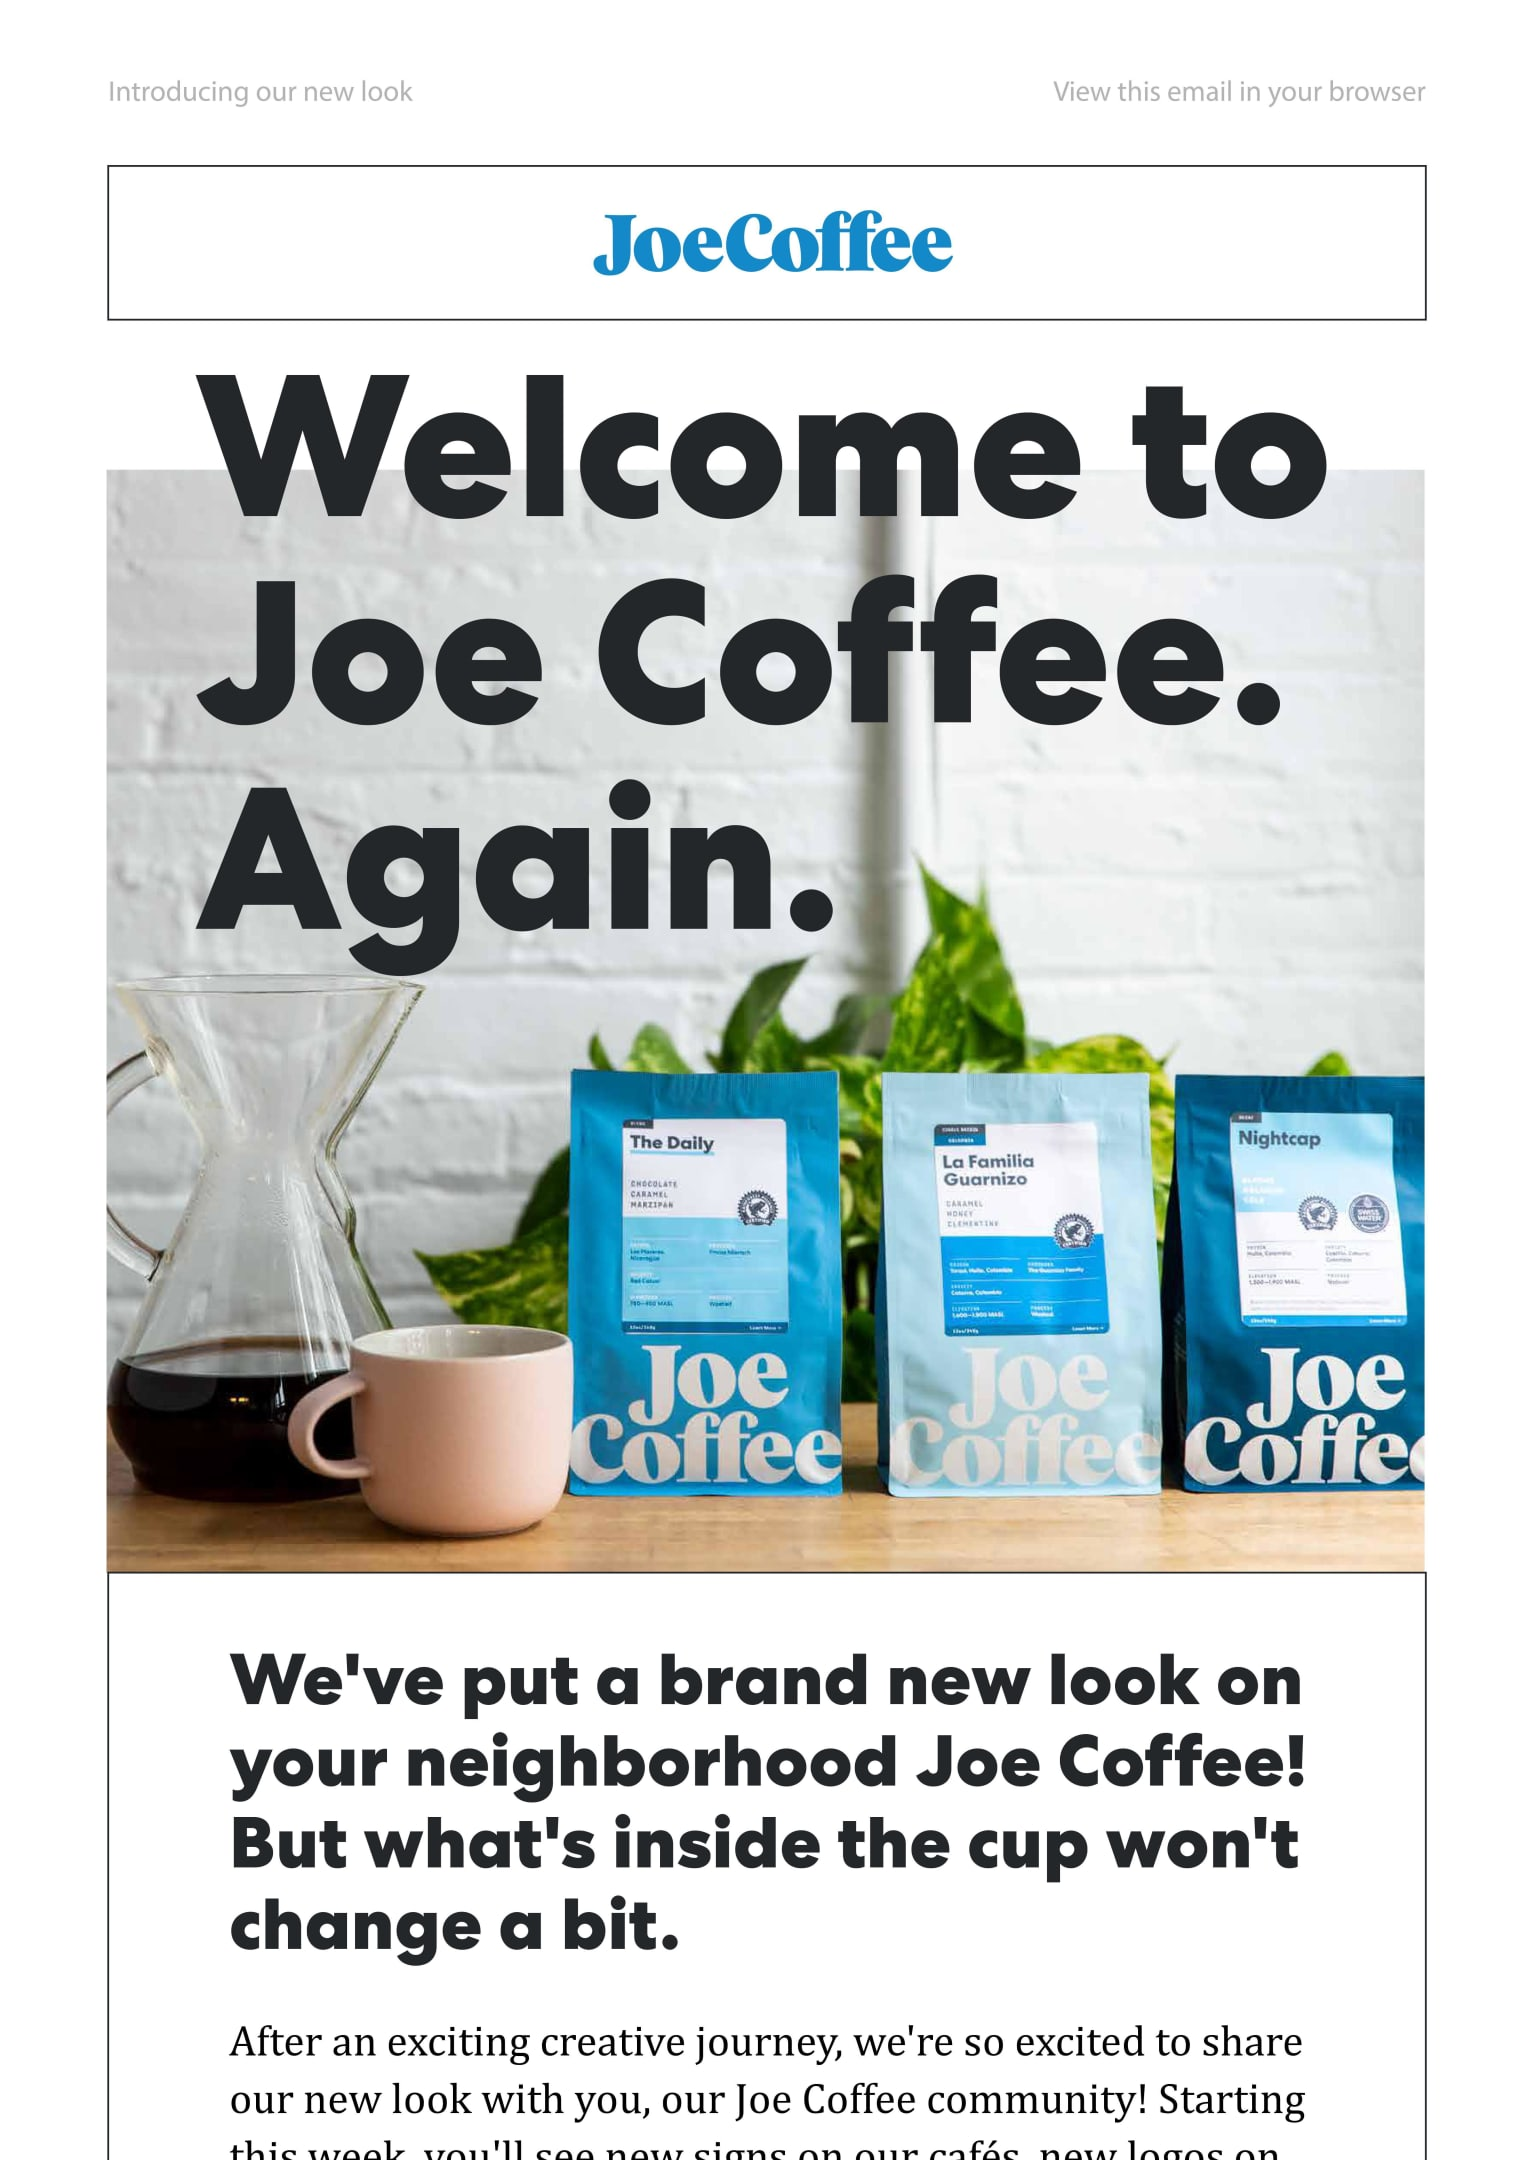 Joe Coffee Company – New Brand Identity Launch